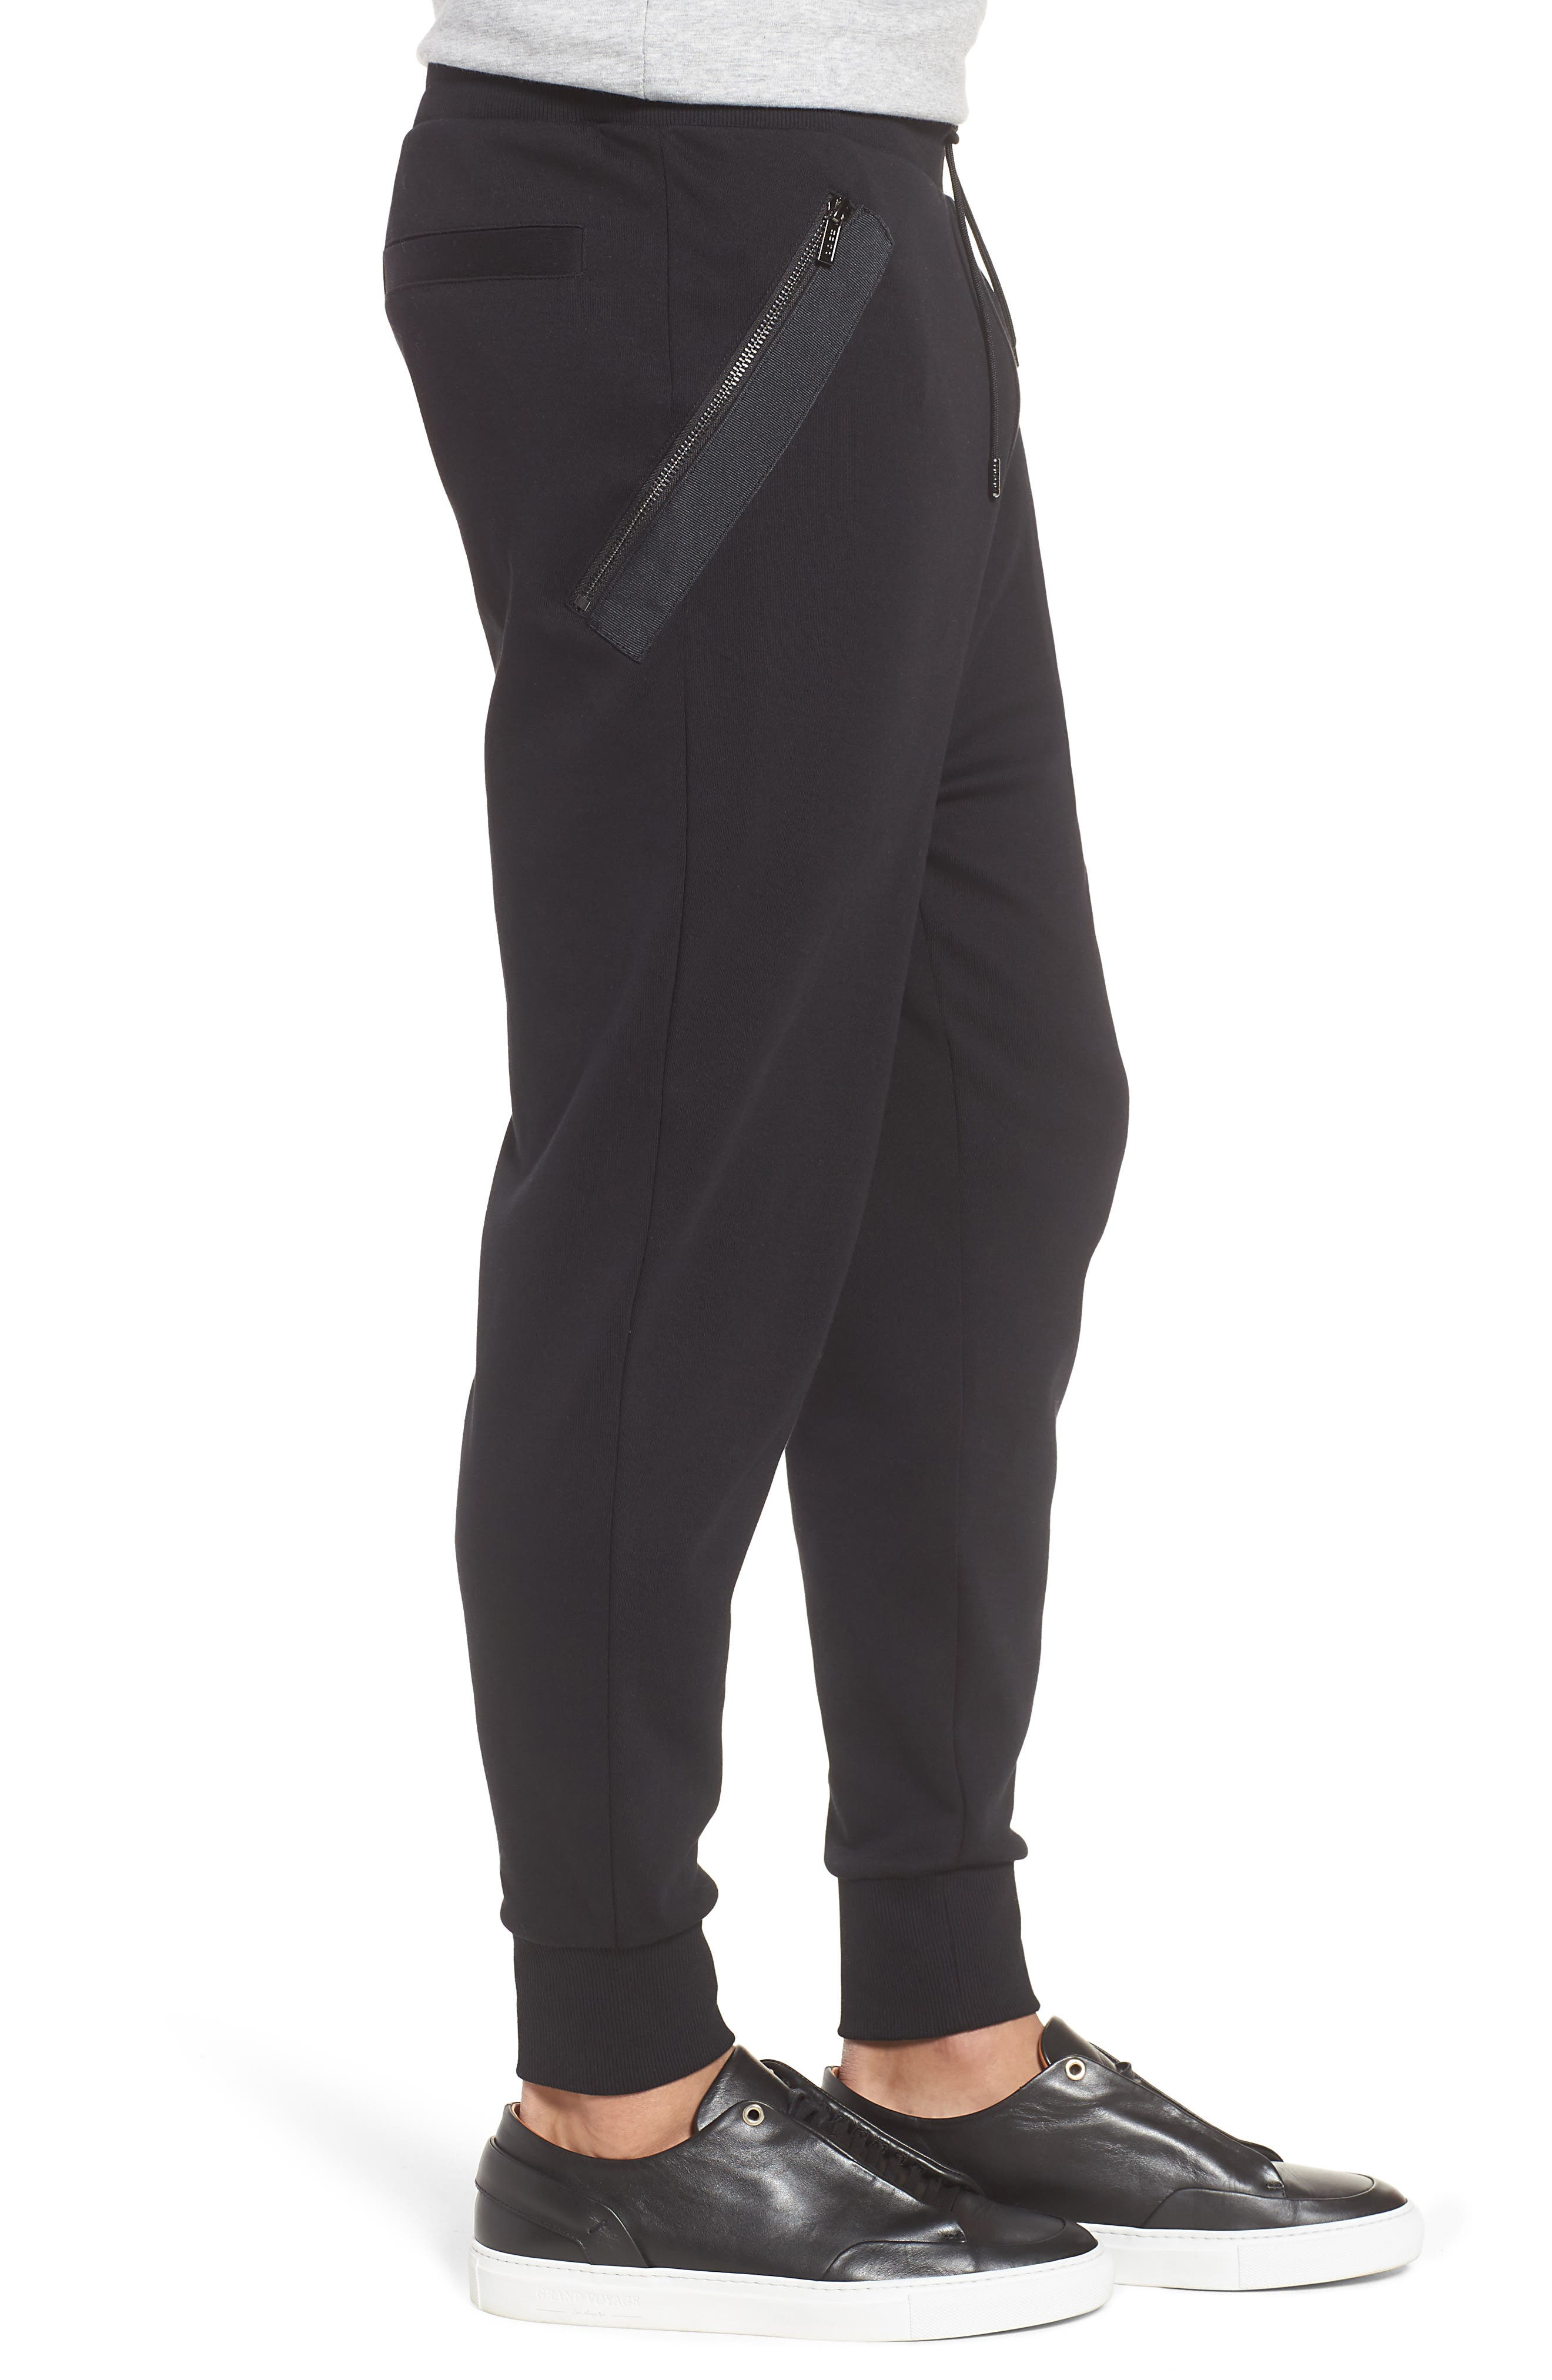 Daring Relaxed Fit Sweatpants,                             Alternate thumbnail 3, color,                             001